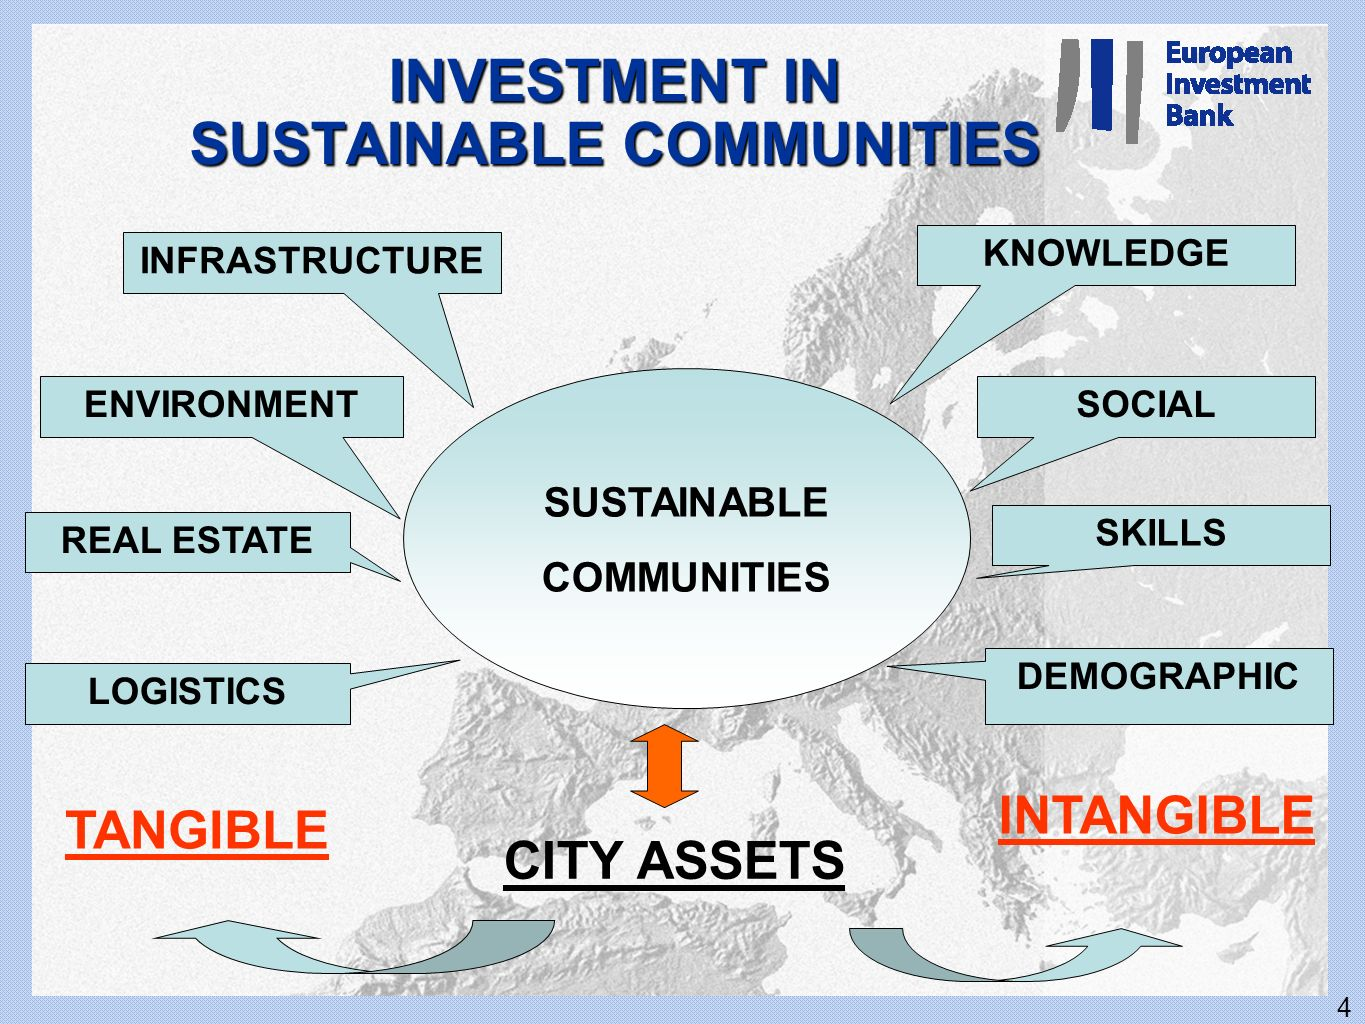 INVESTMENT IN SUSTAINABLE COMMUNITIES